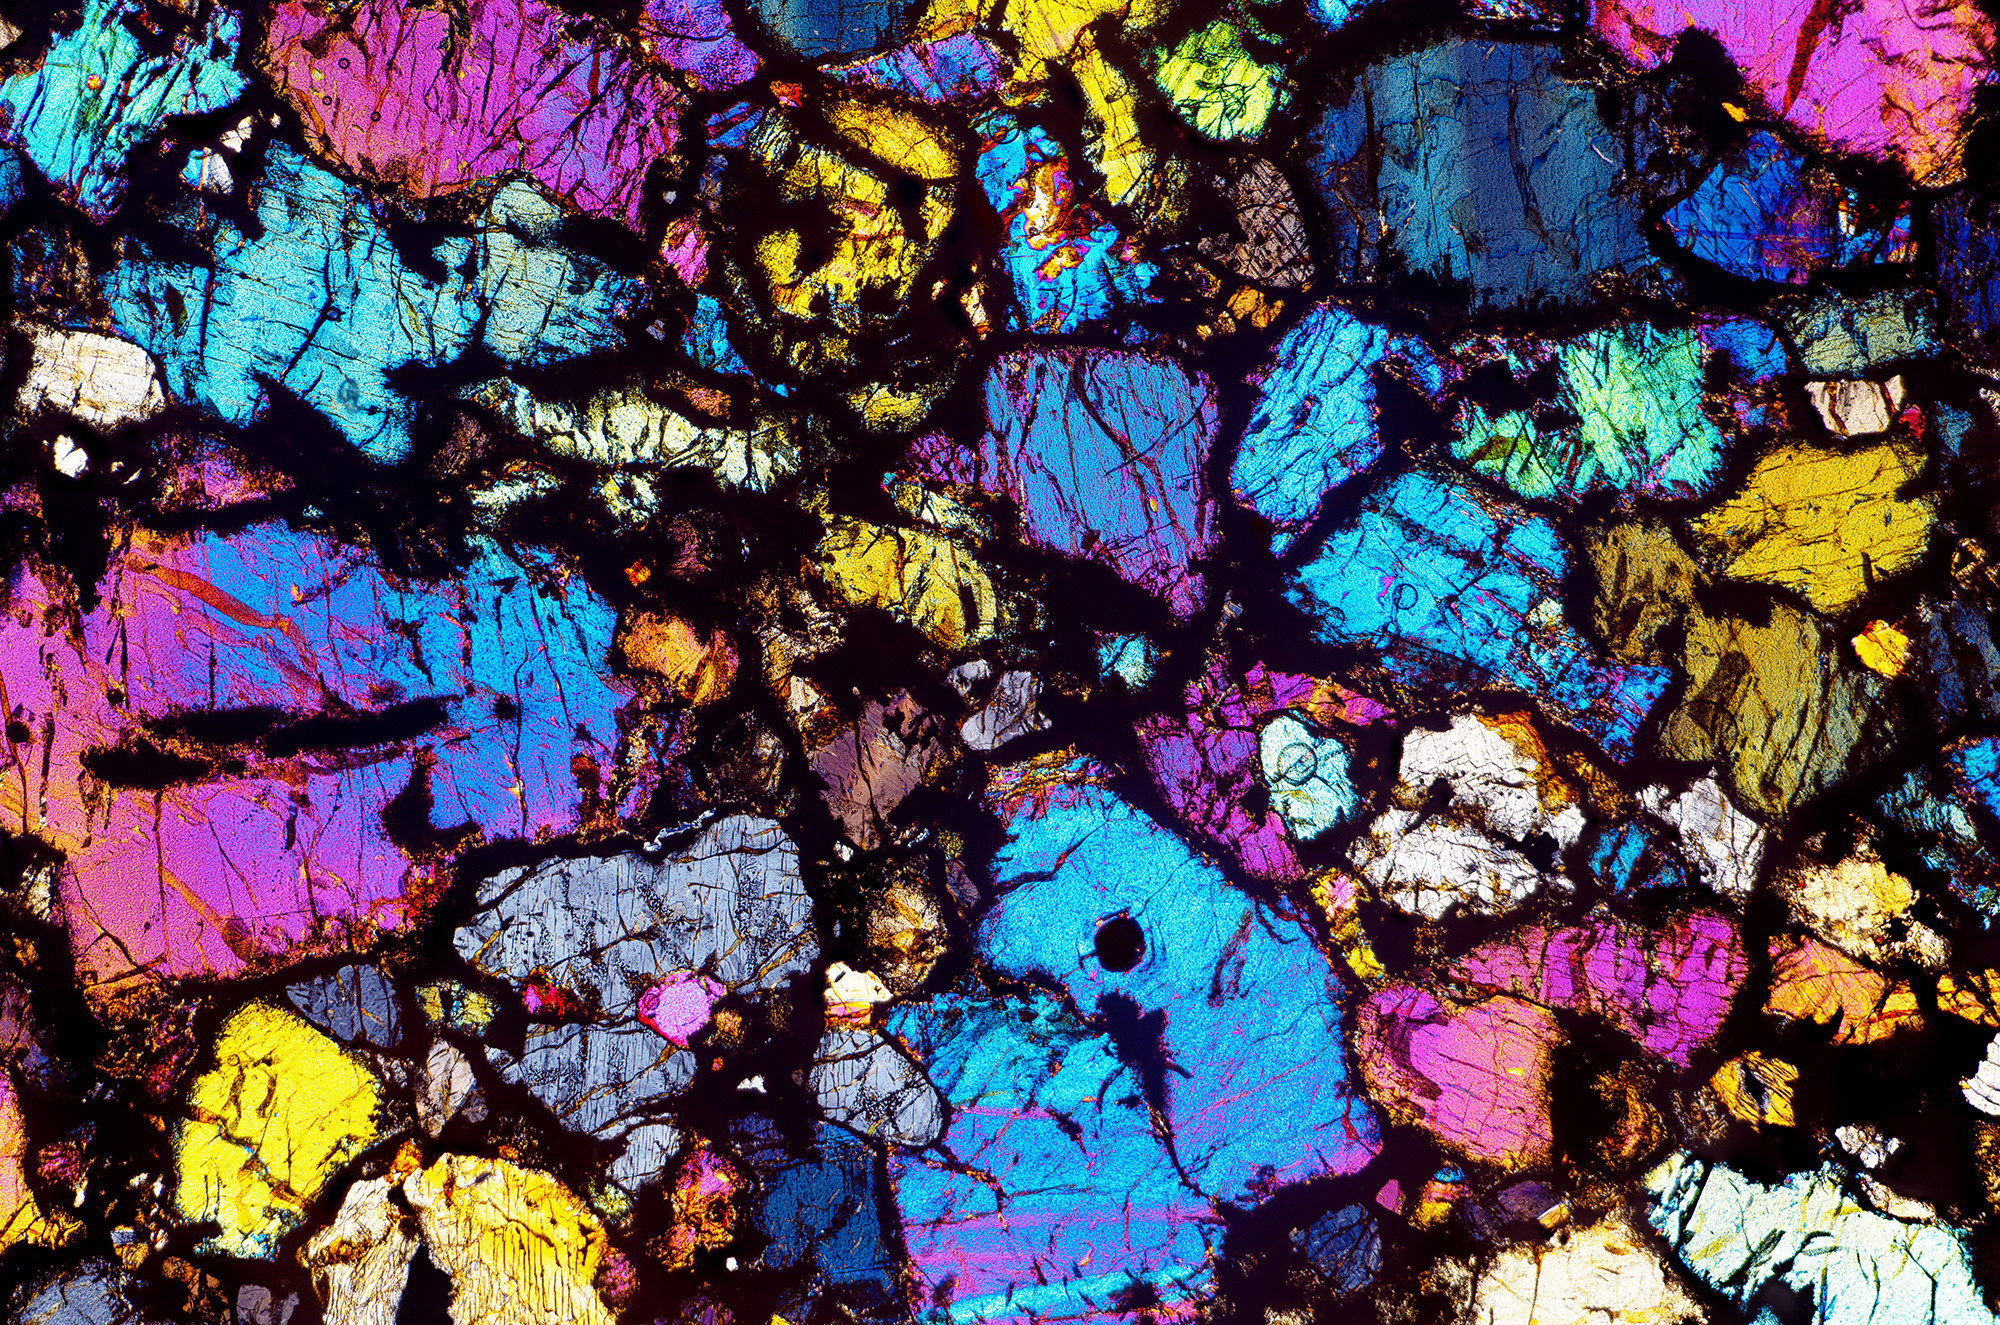 A jumble of colors on black with rocks and streaks of color throughout,  magnified many times